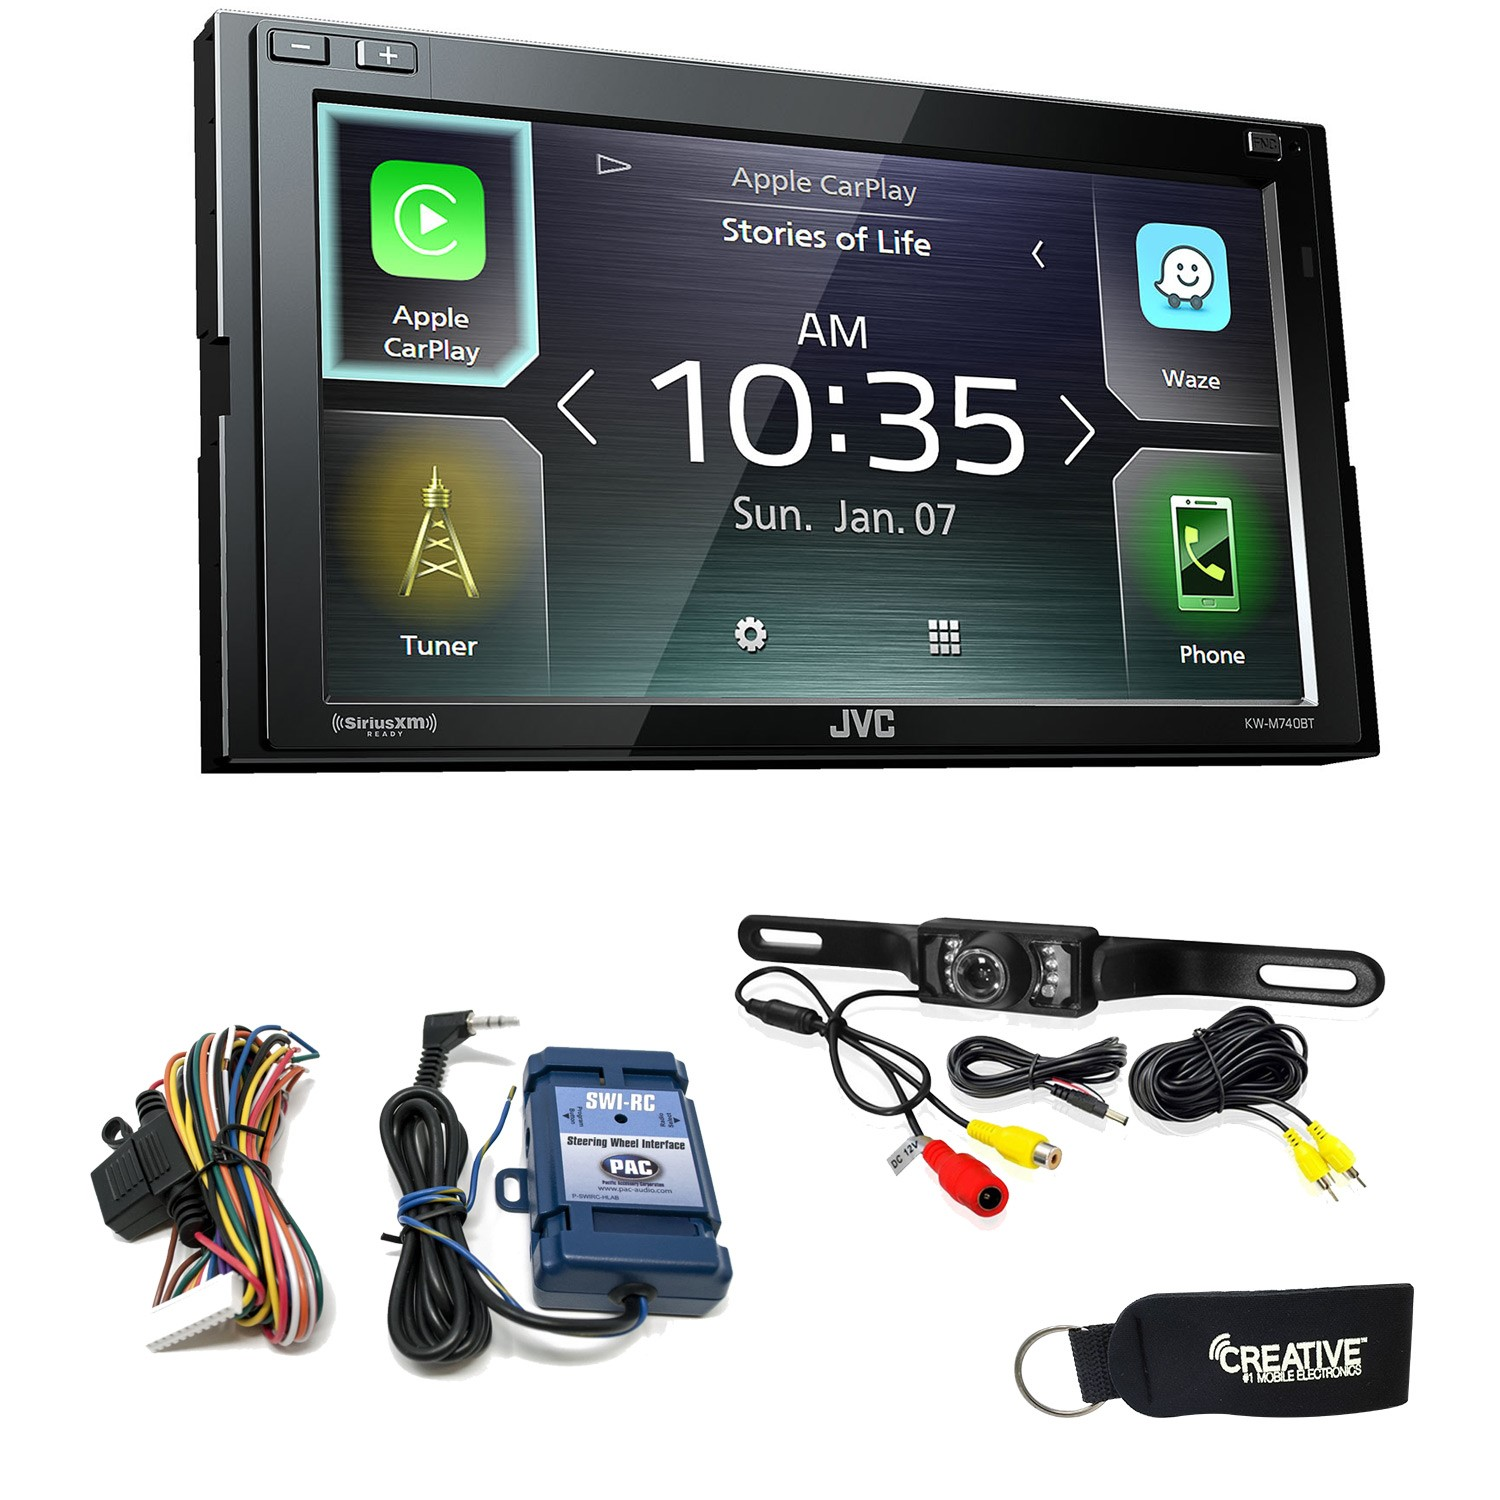 JVC KW-M740BT Compatible with Apple CarPlay, Android Auto 2-DIN Receiver (No CD) w/ back up camera & Steering Interface